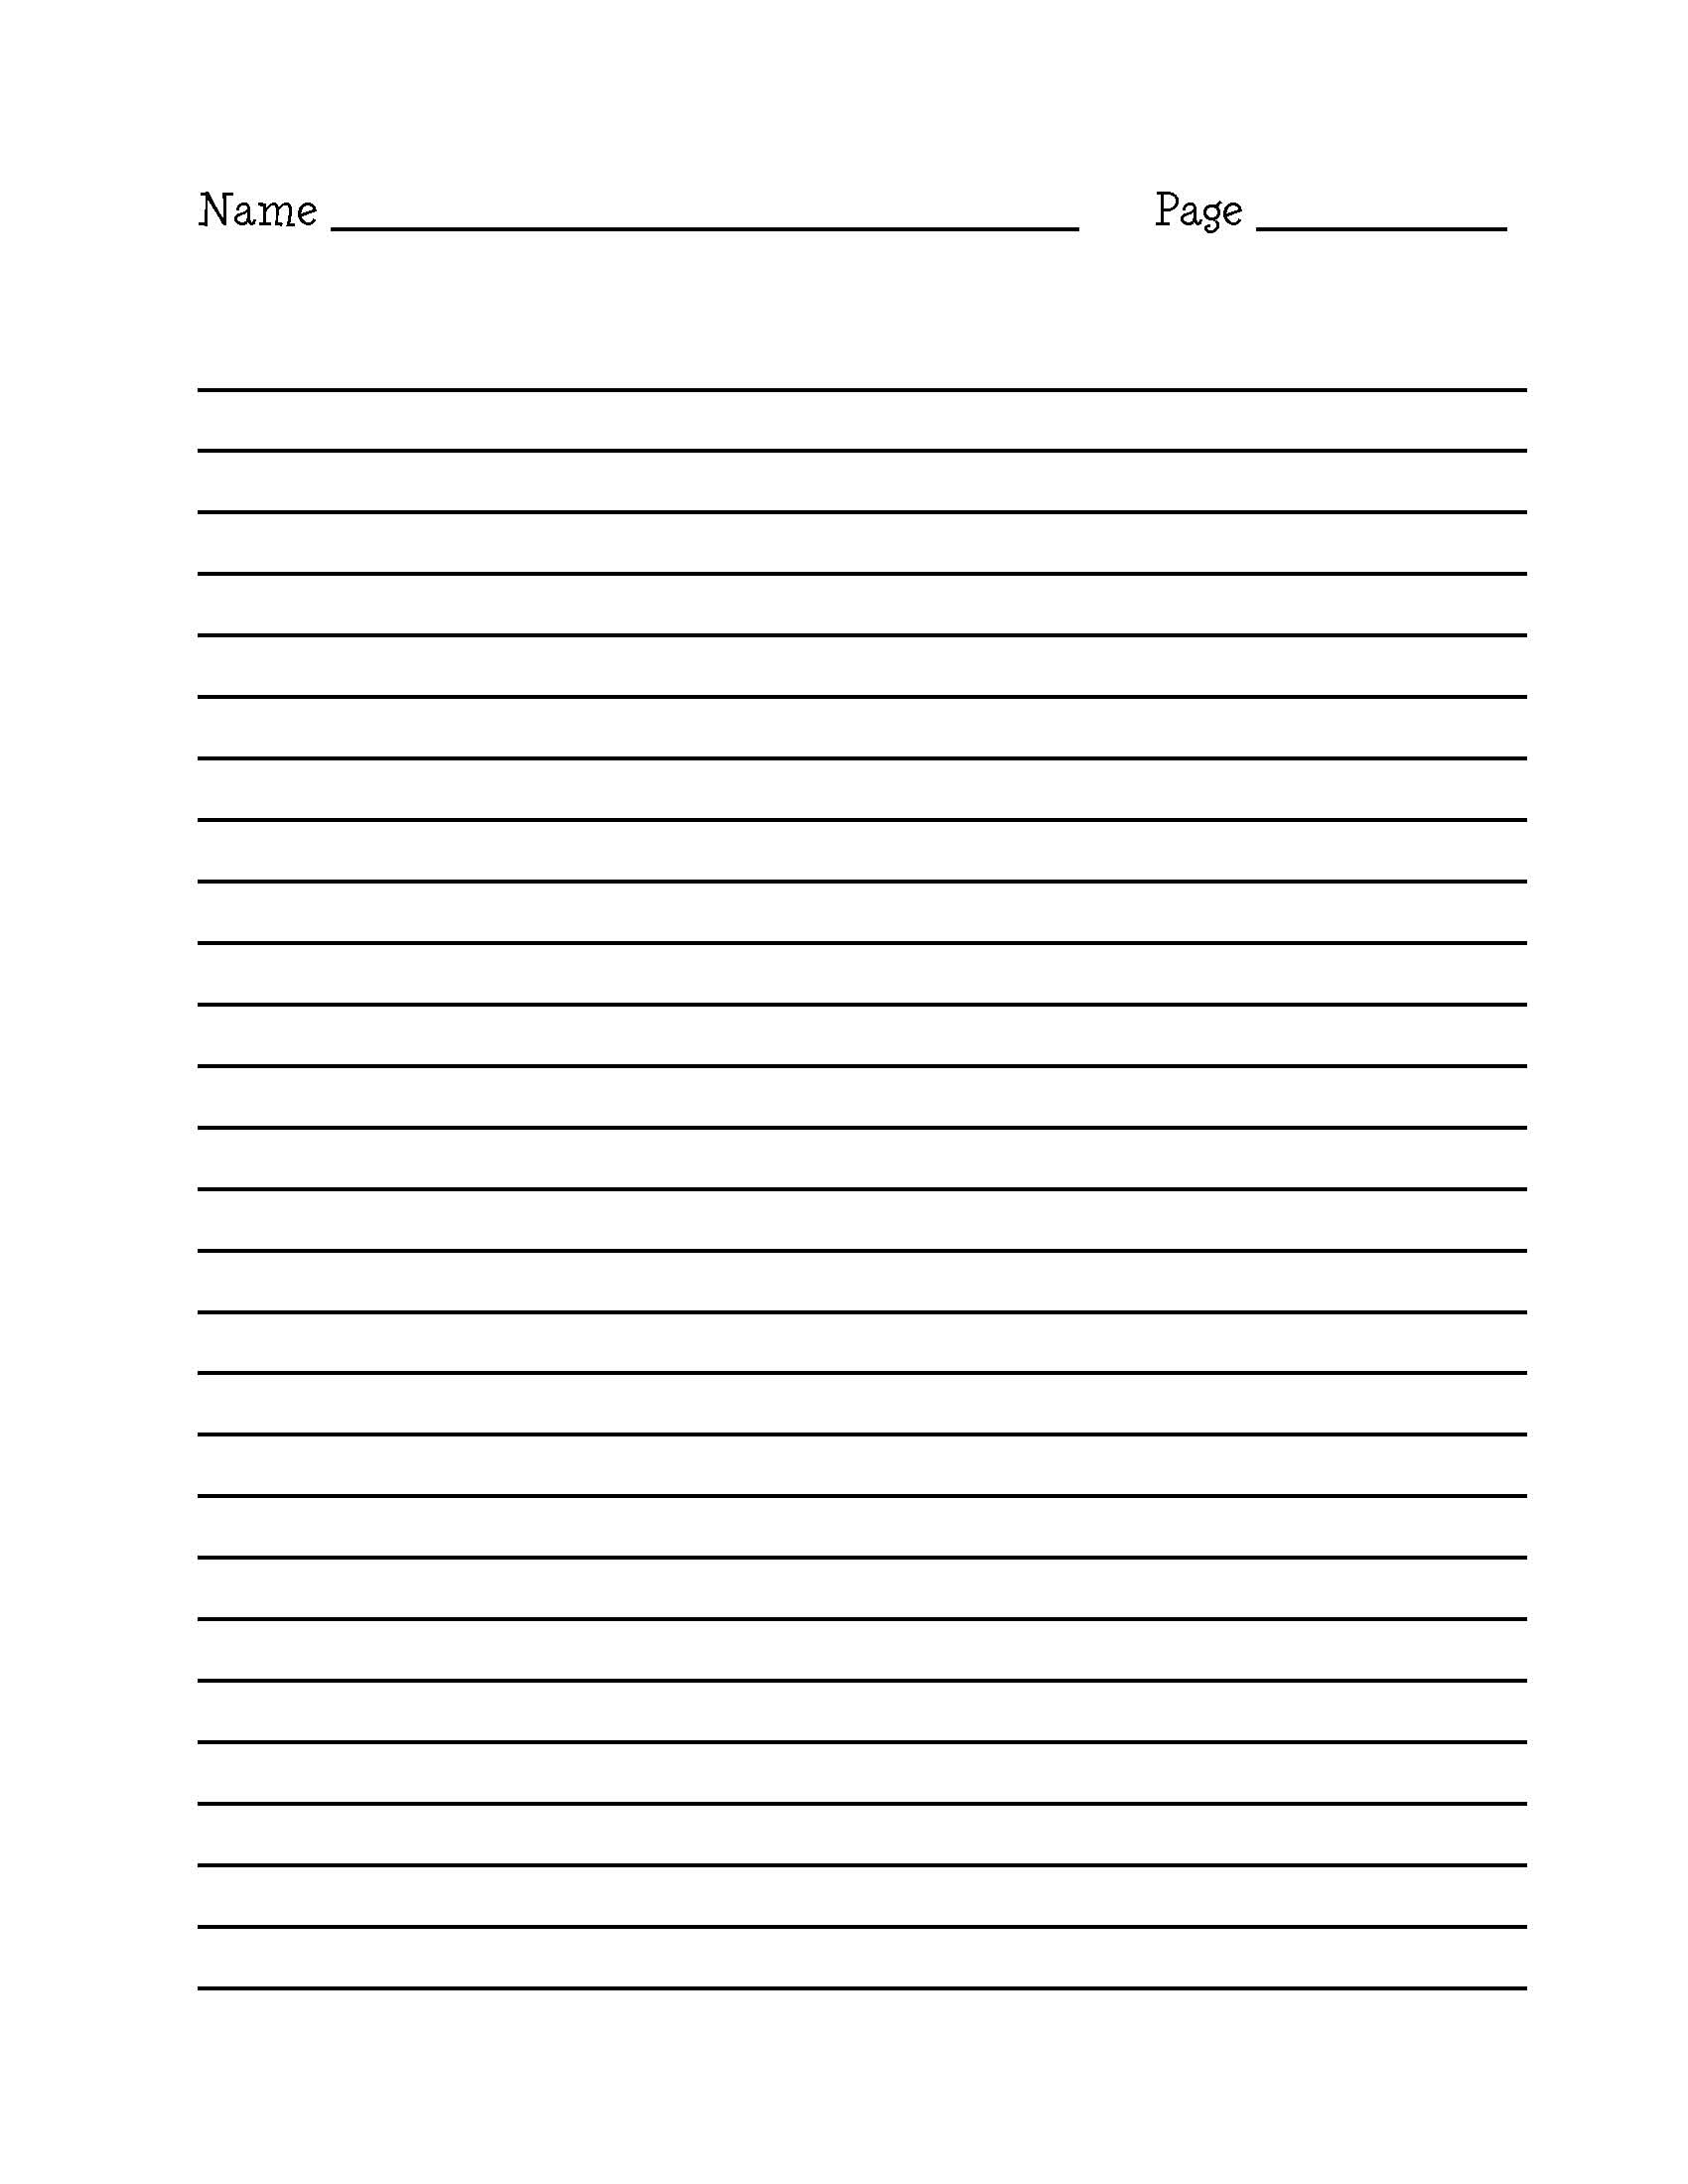 picture regarding Lined Paper Printable Pdf named 15+ Obtain A4 Protected Paper Templates All Style Templates